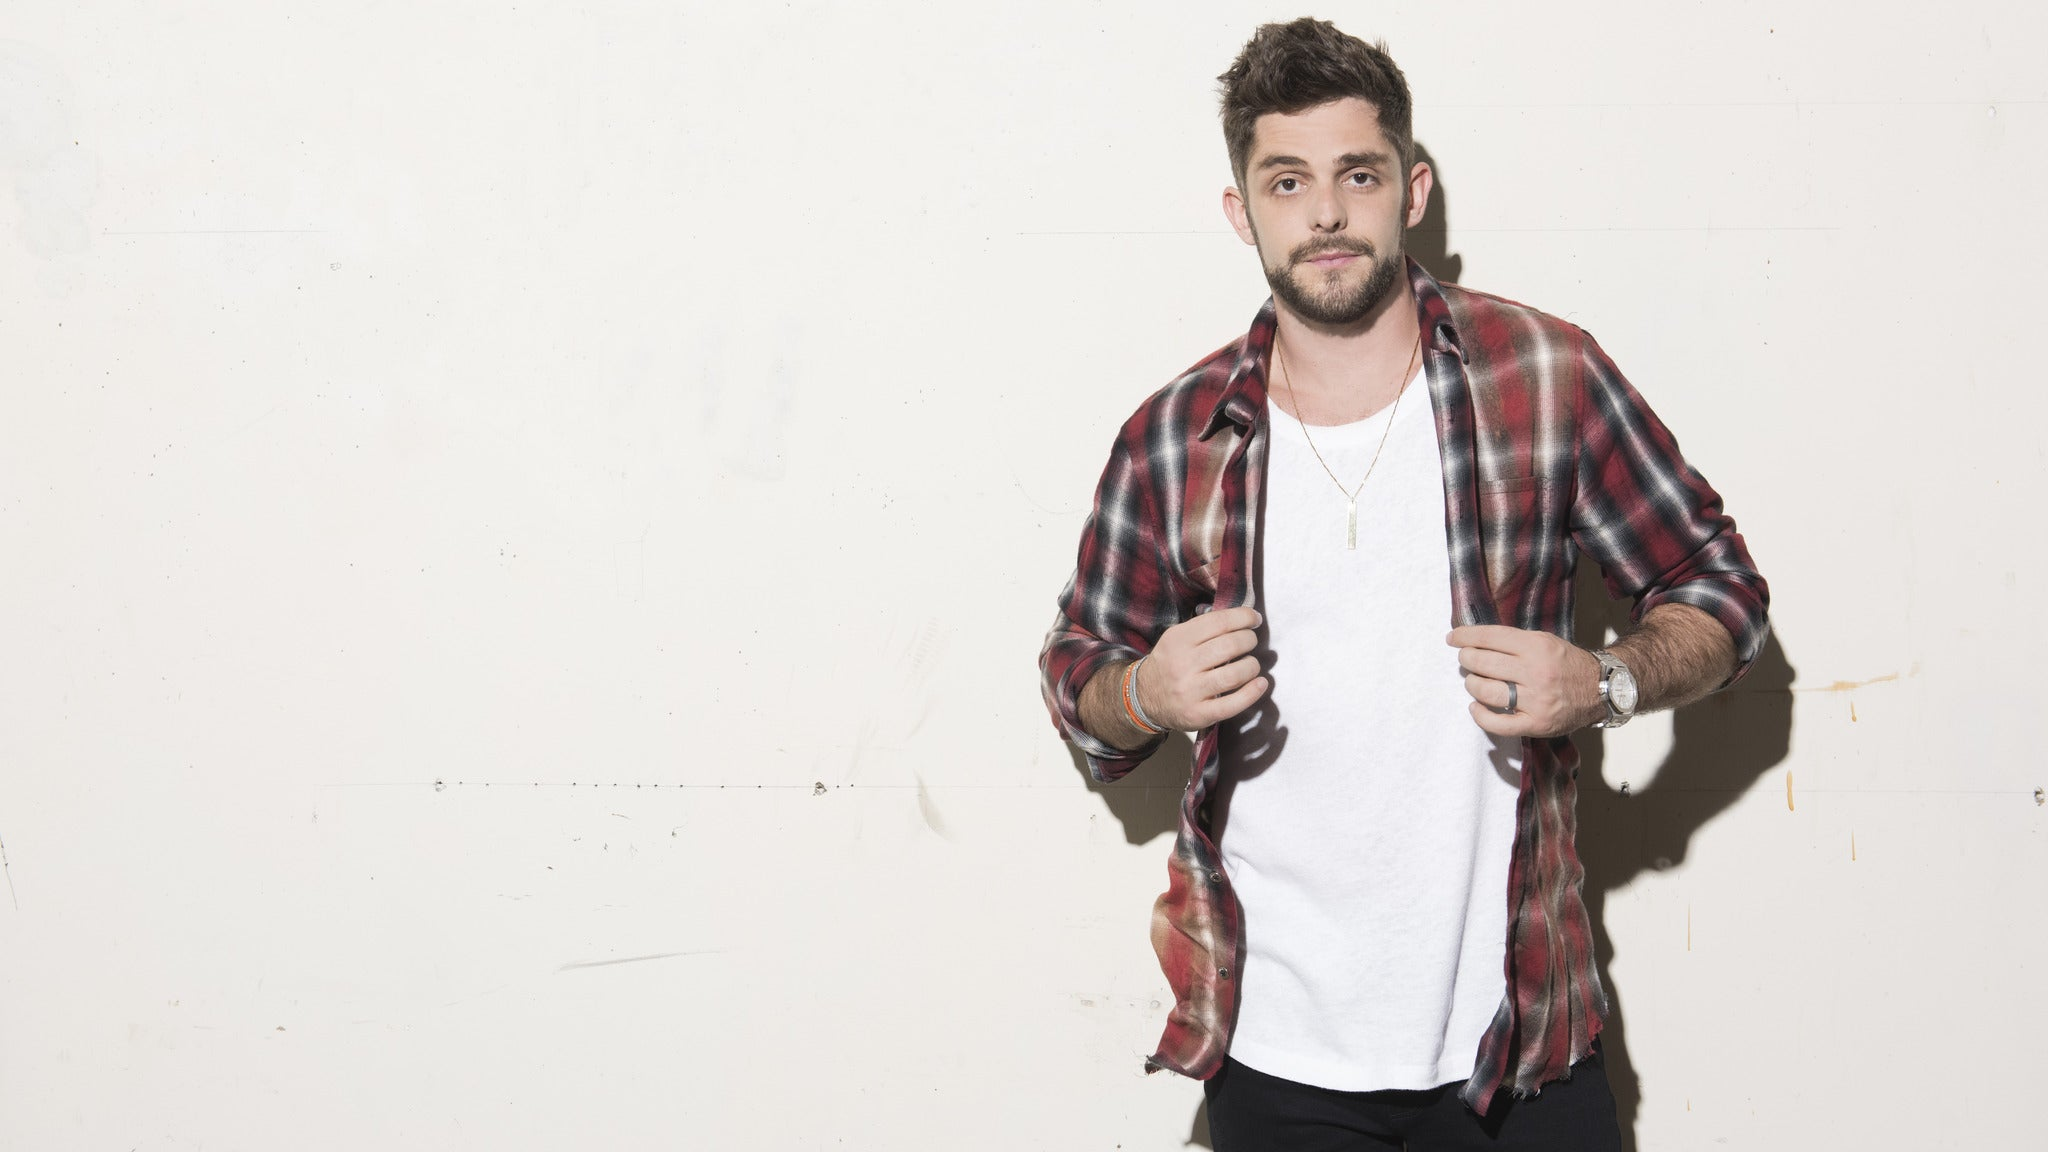 Thomas Rhett: Life Changes Tour 2018 at Golden 1 Center